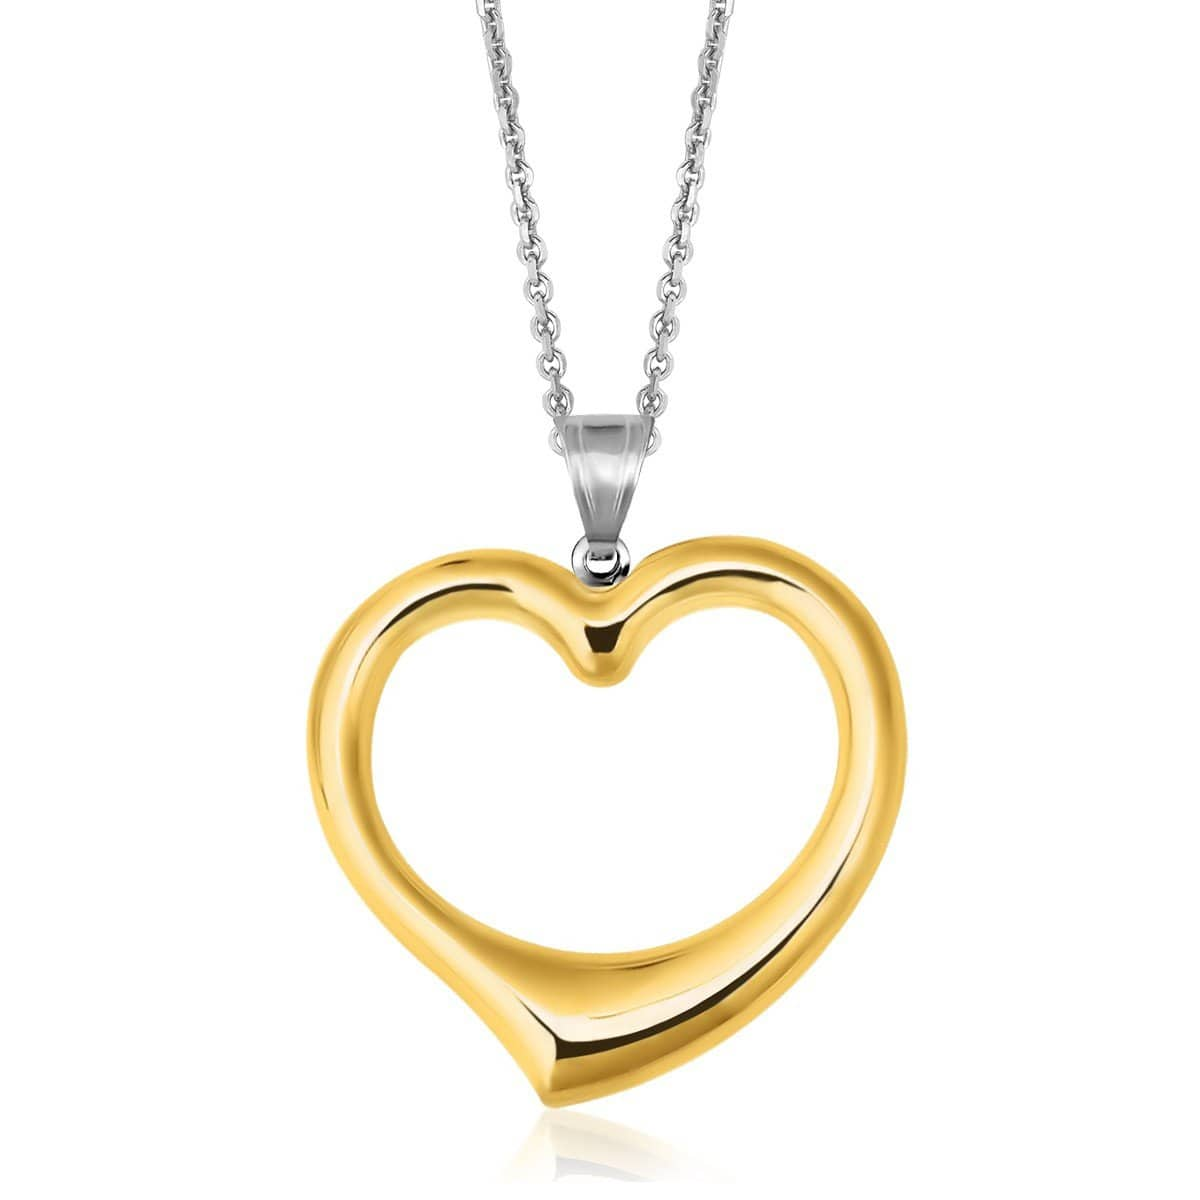 14K Yellow Gold & Sterling Silver Designer Pendant with Reversible Heart 18 inches